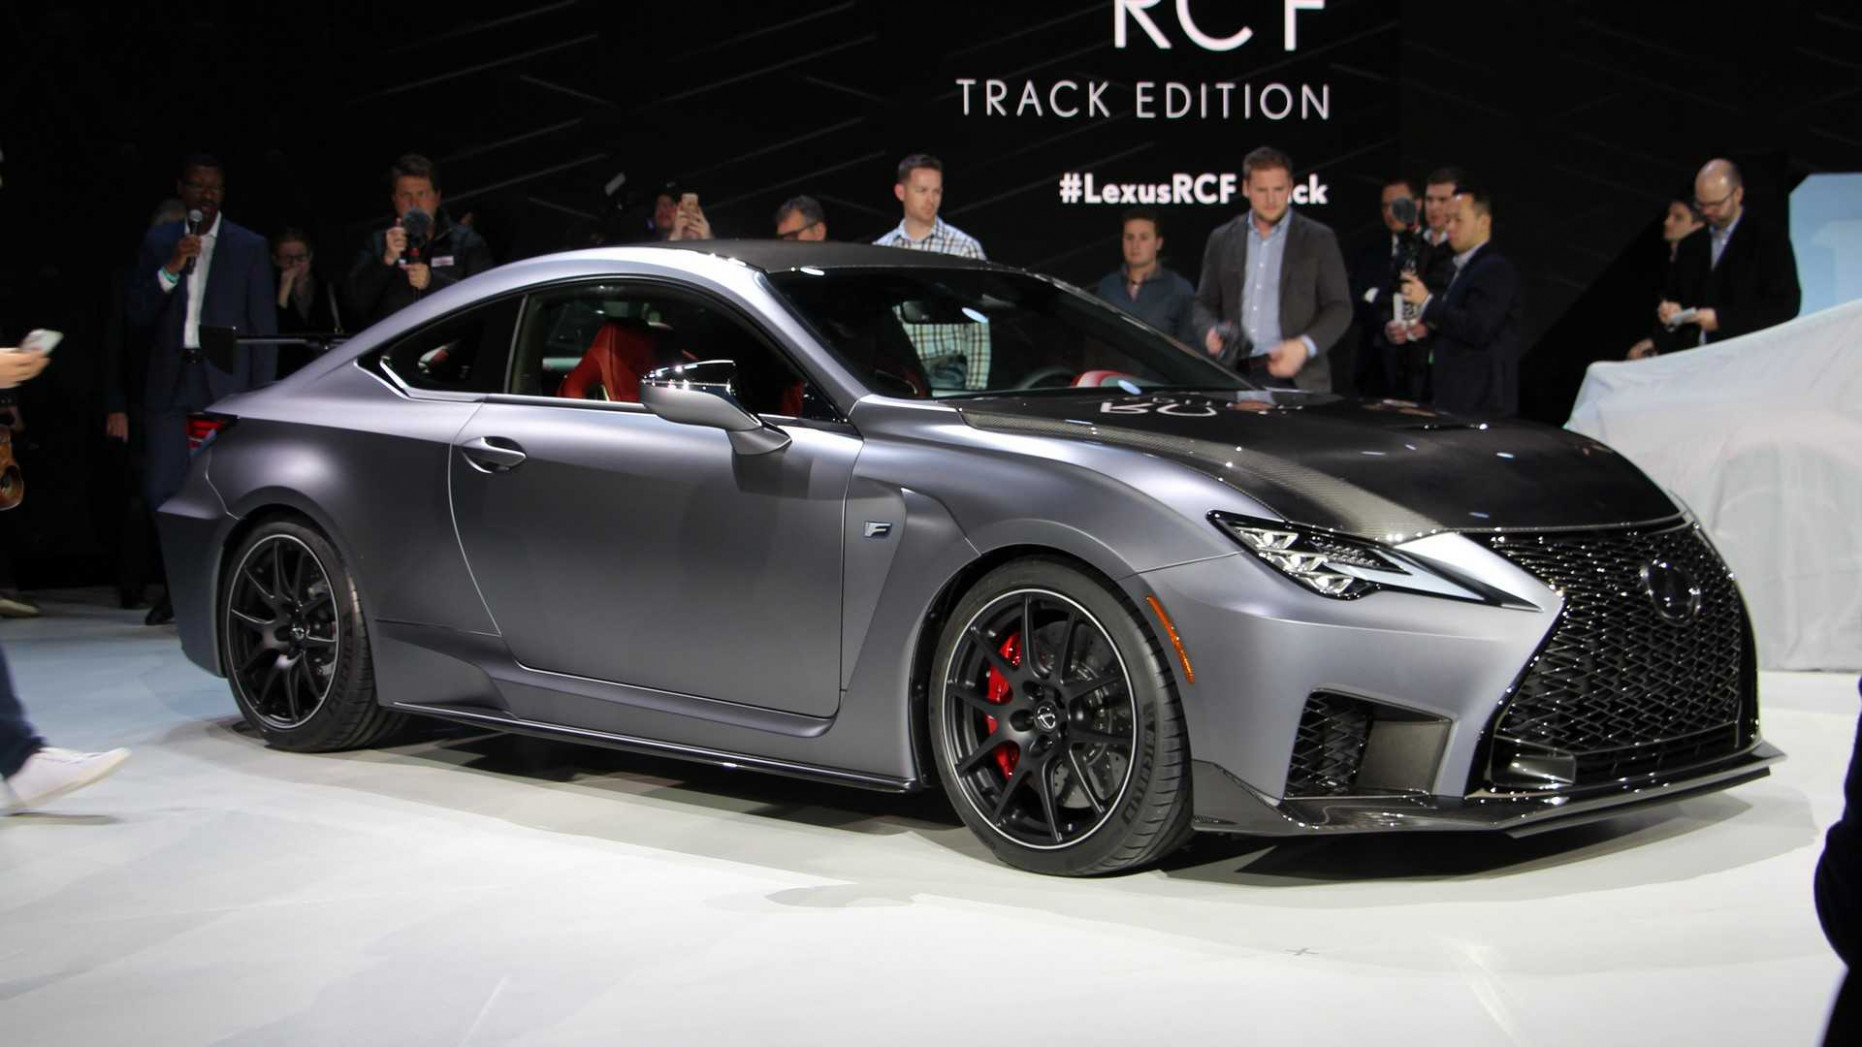 12 Lexus RC F Starts At $12,12, Track Edition Pricier Than LC